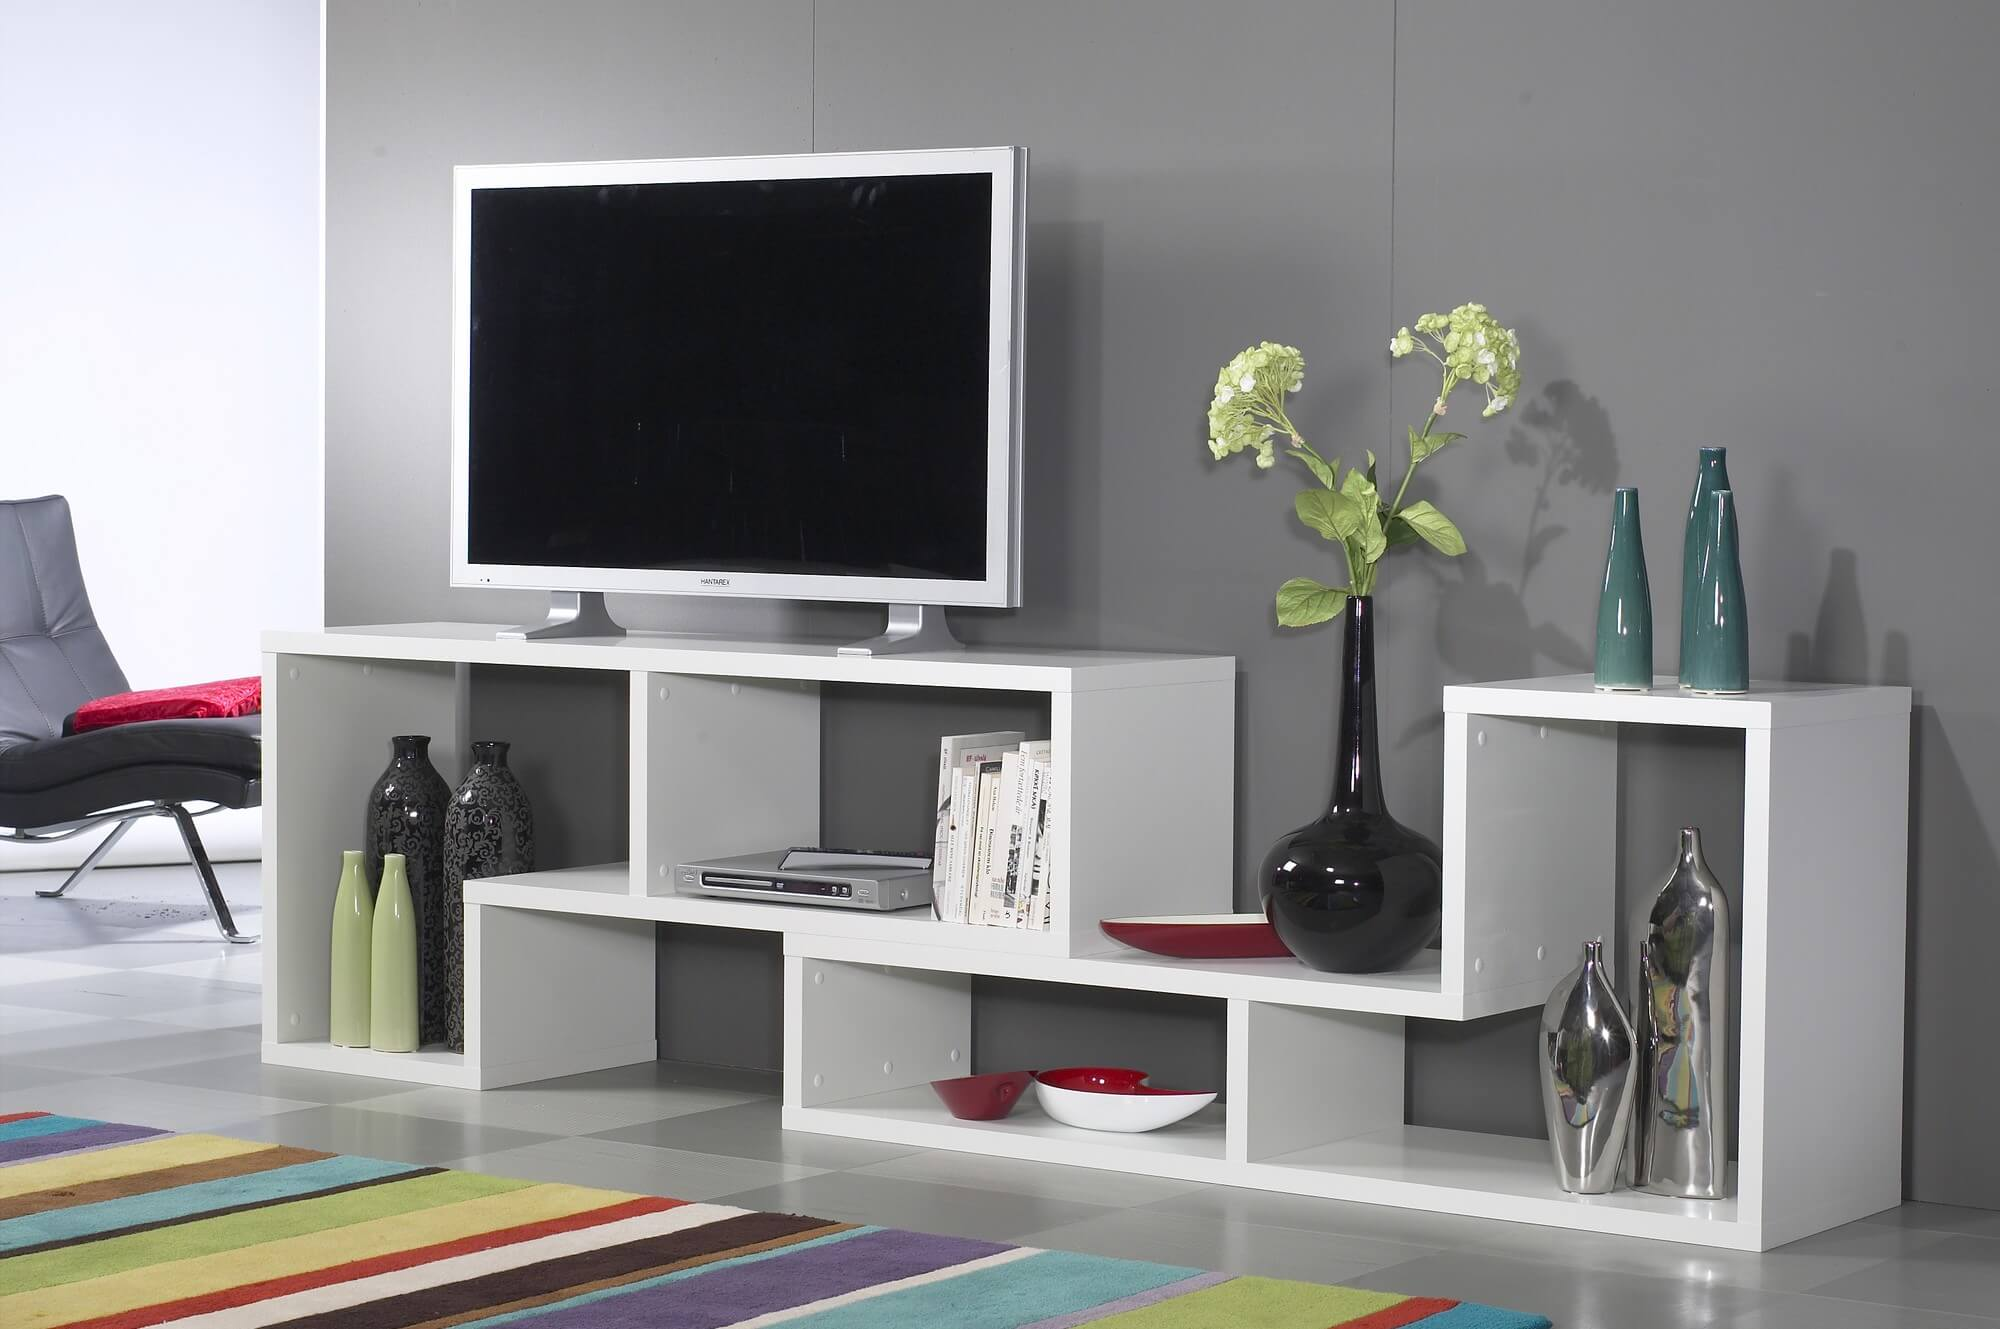 This is a horizontally oriented modern 6cube shelving unit that as